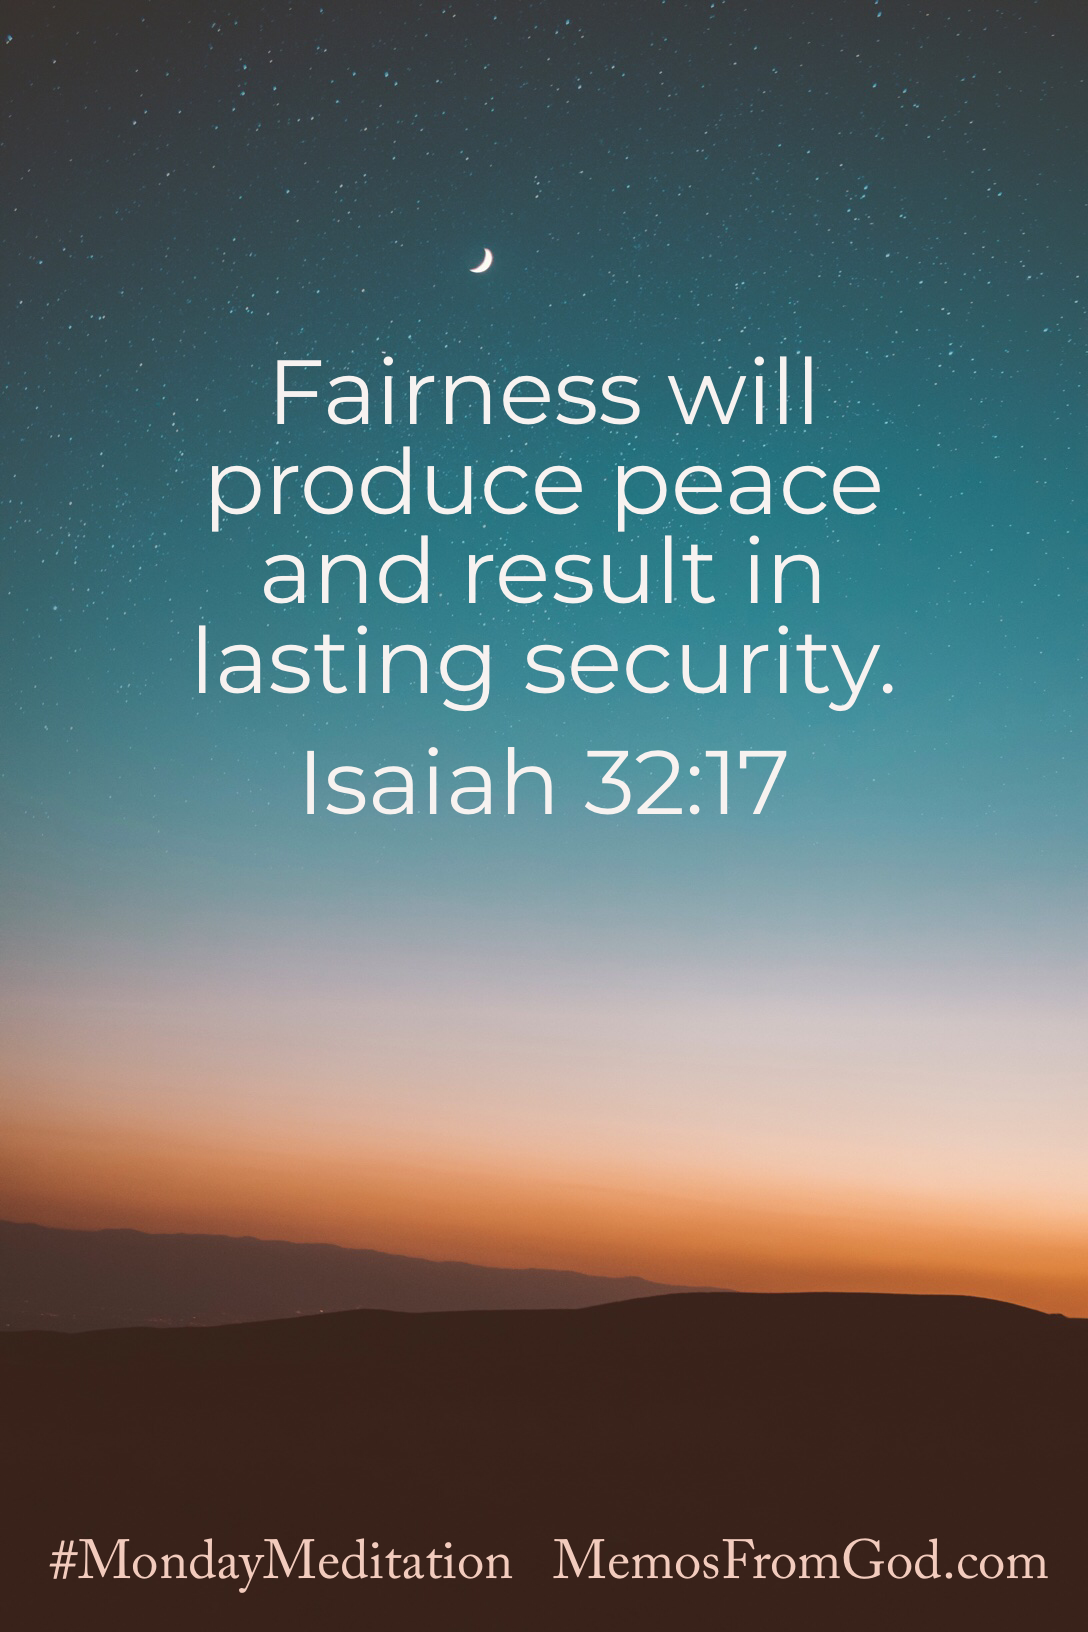 A starry sky, teal at the top, orange at the horizon, over a dark hilly landscape. Caption: Fairness will produce peace and result in lasting security. Isaiah 32:17